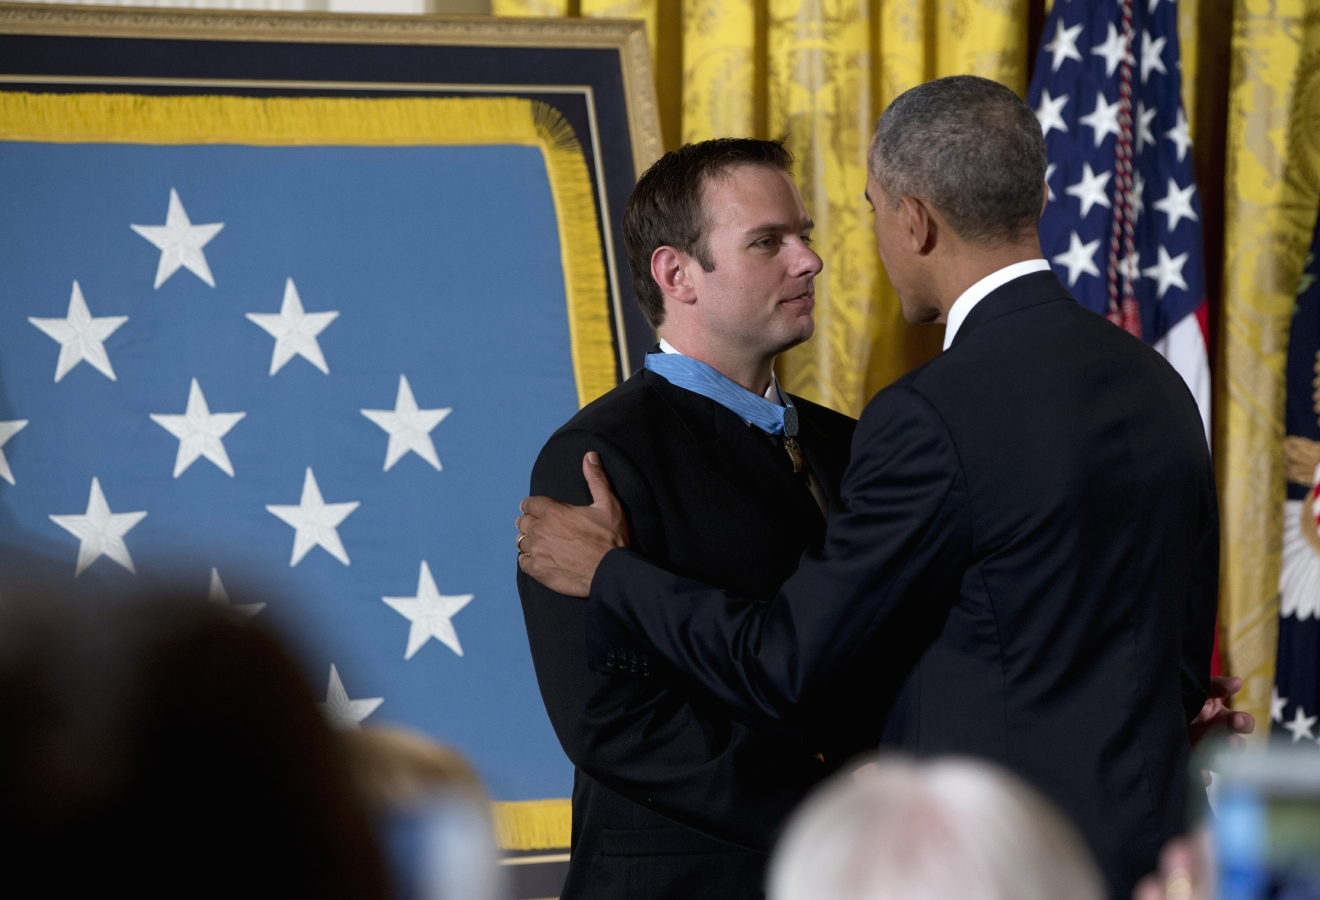 President Barack Obama talks to Senior Chief Special Warfare Operator Edward Byers  after presenting him with the Medal of Honor during a ceremony in the East Room of the White House in Washington, Monday, Feb. 29, 2016. U.S. Navy. Senior Chief Byers received the Medal of Honor for his courageous actions while serving as part of a team that rescued an American civilian being held hostage in Afghanistan on December 8-9, 2012. (AP Photo/Carolyn Kaster)